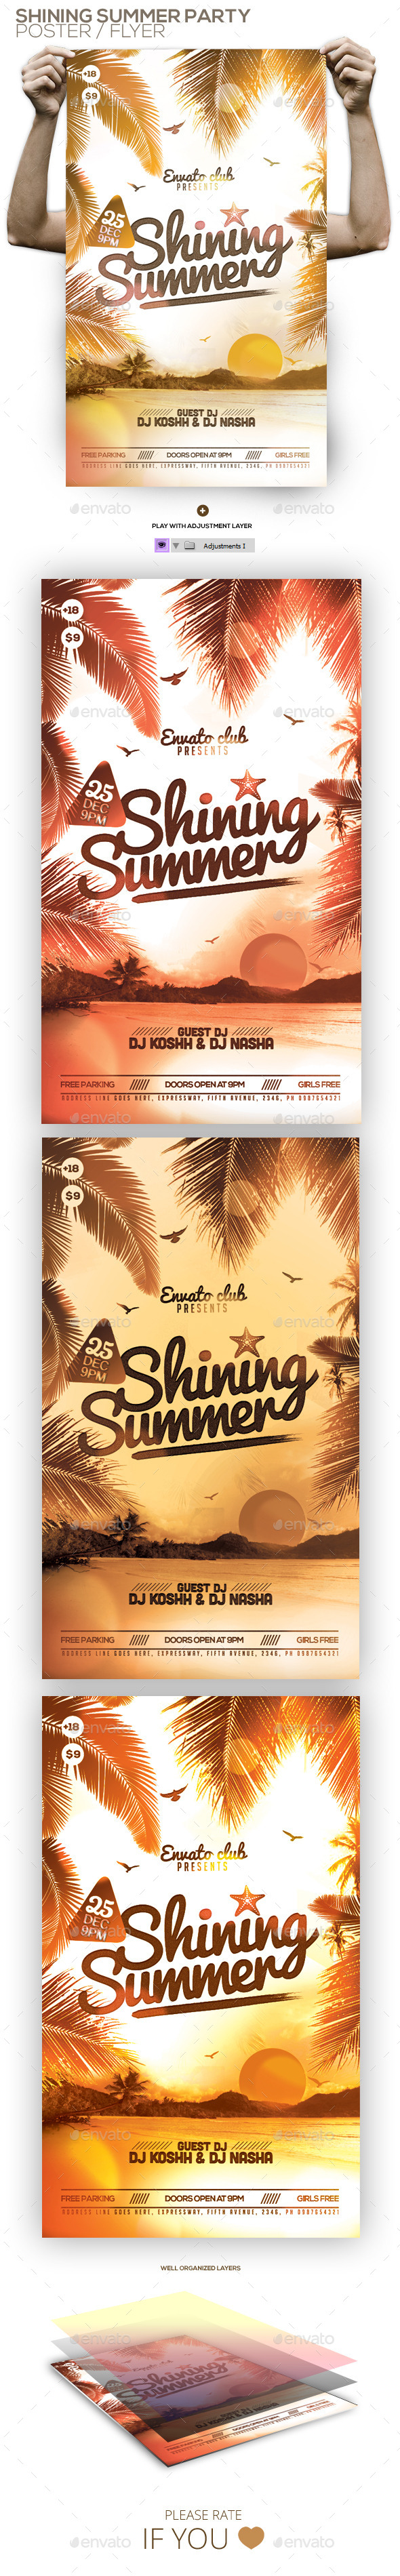 Shining Summer Party Flyer - Clubs & Parties Events